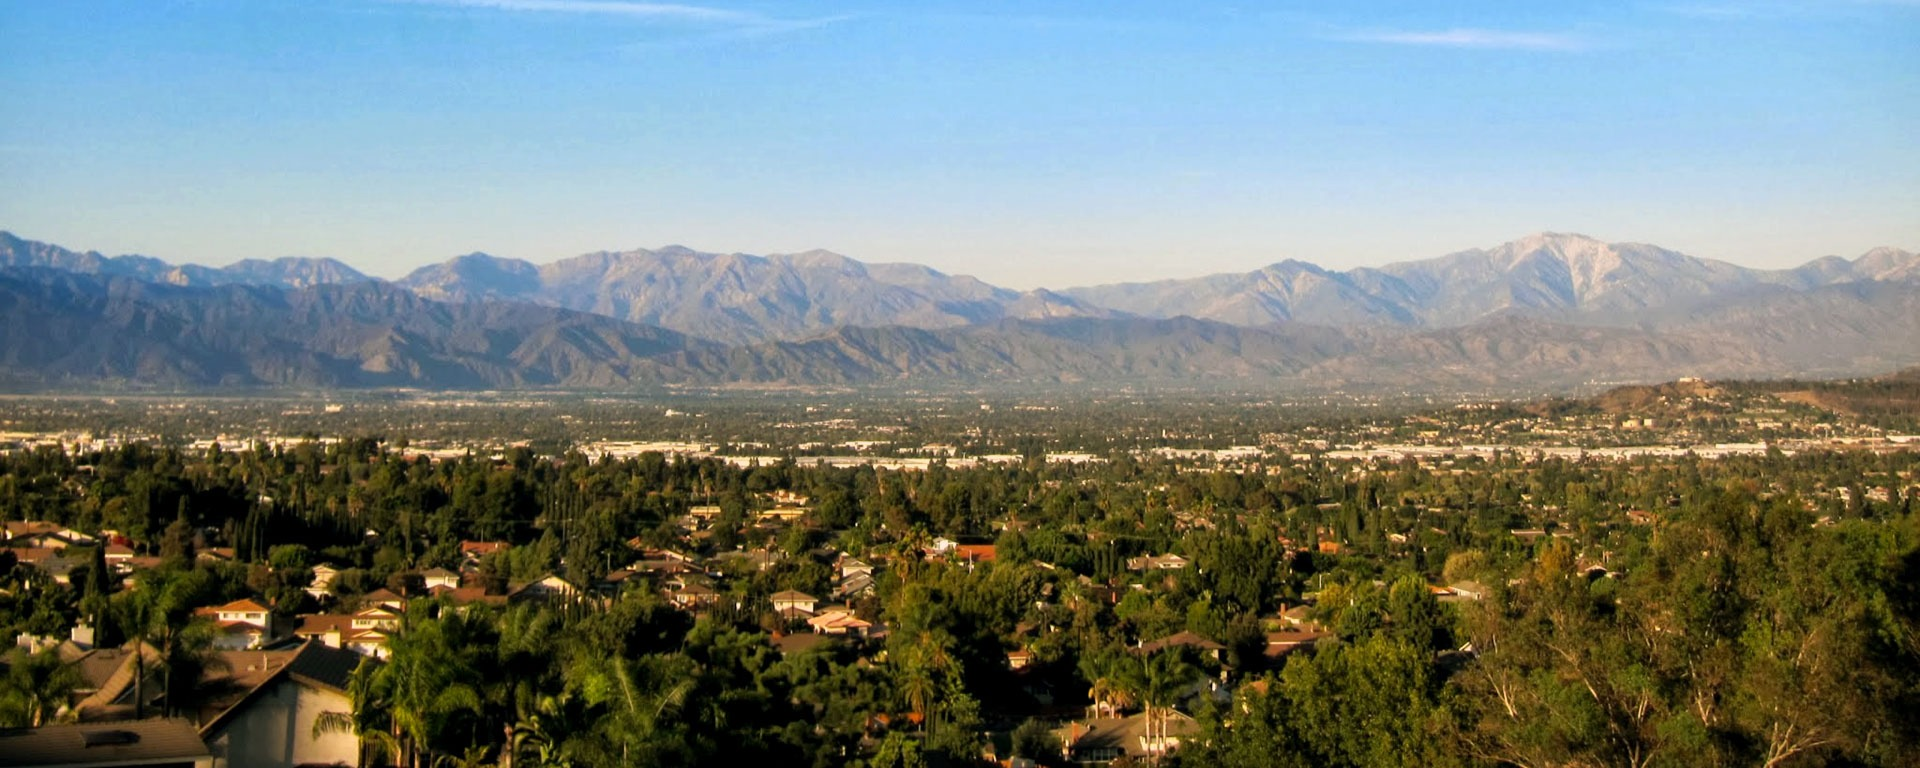 sangabrielvalley_edited.jpg